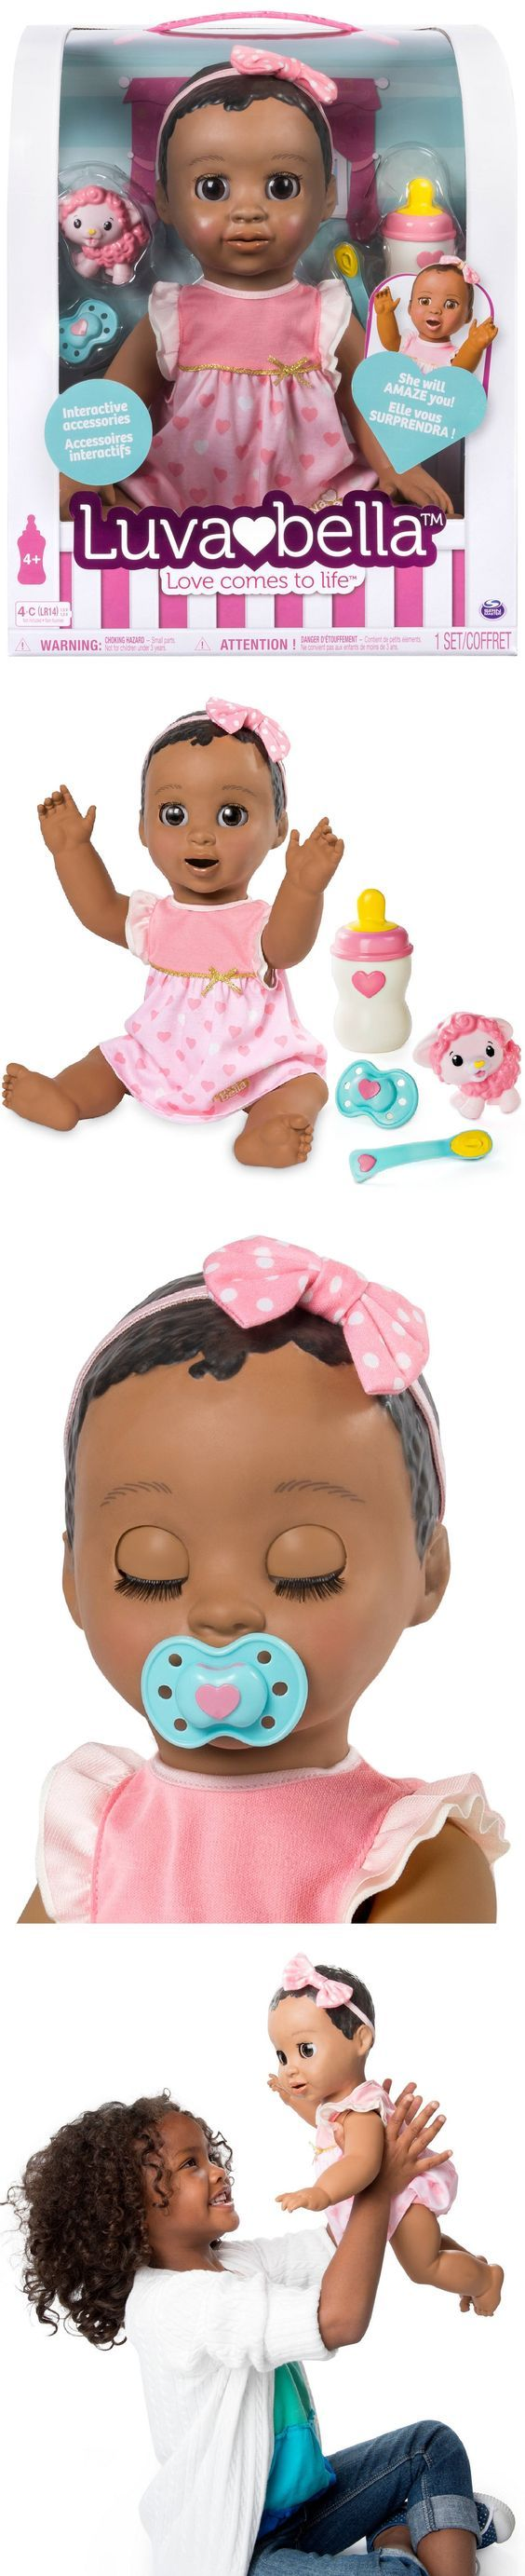 Christmas 2017 gift for our beautiful granddaughter. Luvabella Responsive Baby Doll-Dark Brown Hair.  She's interactive with true-to-life facial expressions and movements! She plays and interacts several ways! The more you play with Luvabella, the more she learns! As you interact with her she'll expand her vocabulary from baby babble to over 100 words and complete phrases!  Luvabella interacts with her spoon, bottle, pacifier and Lamby toy.